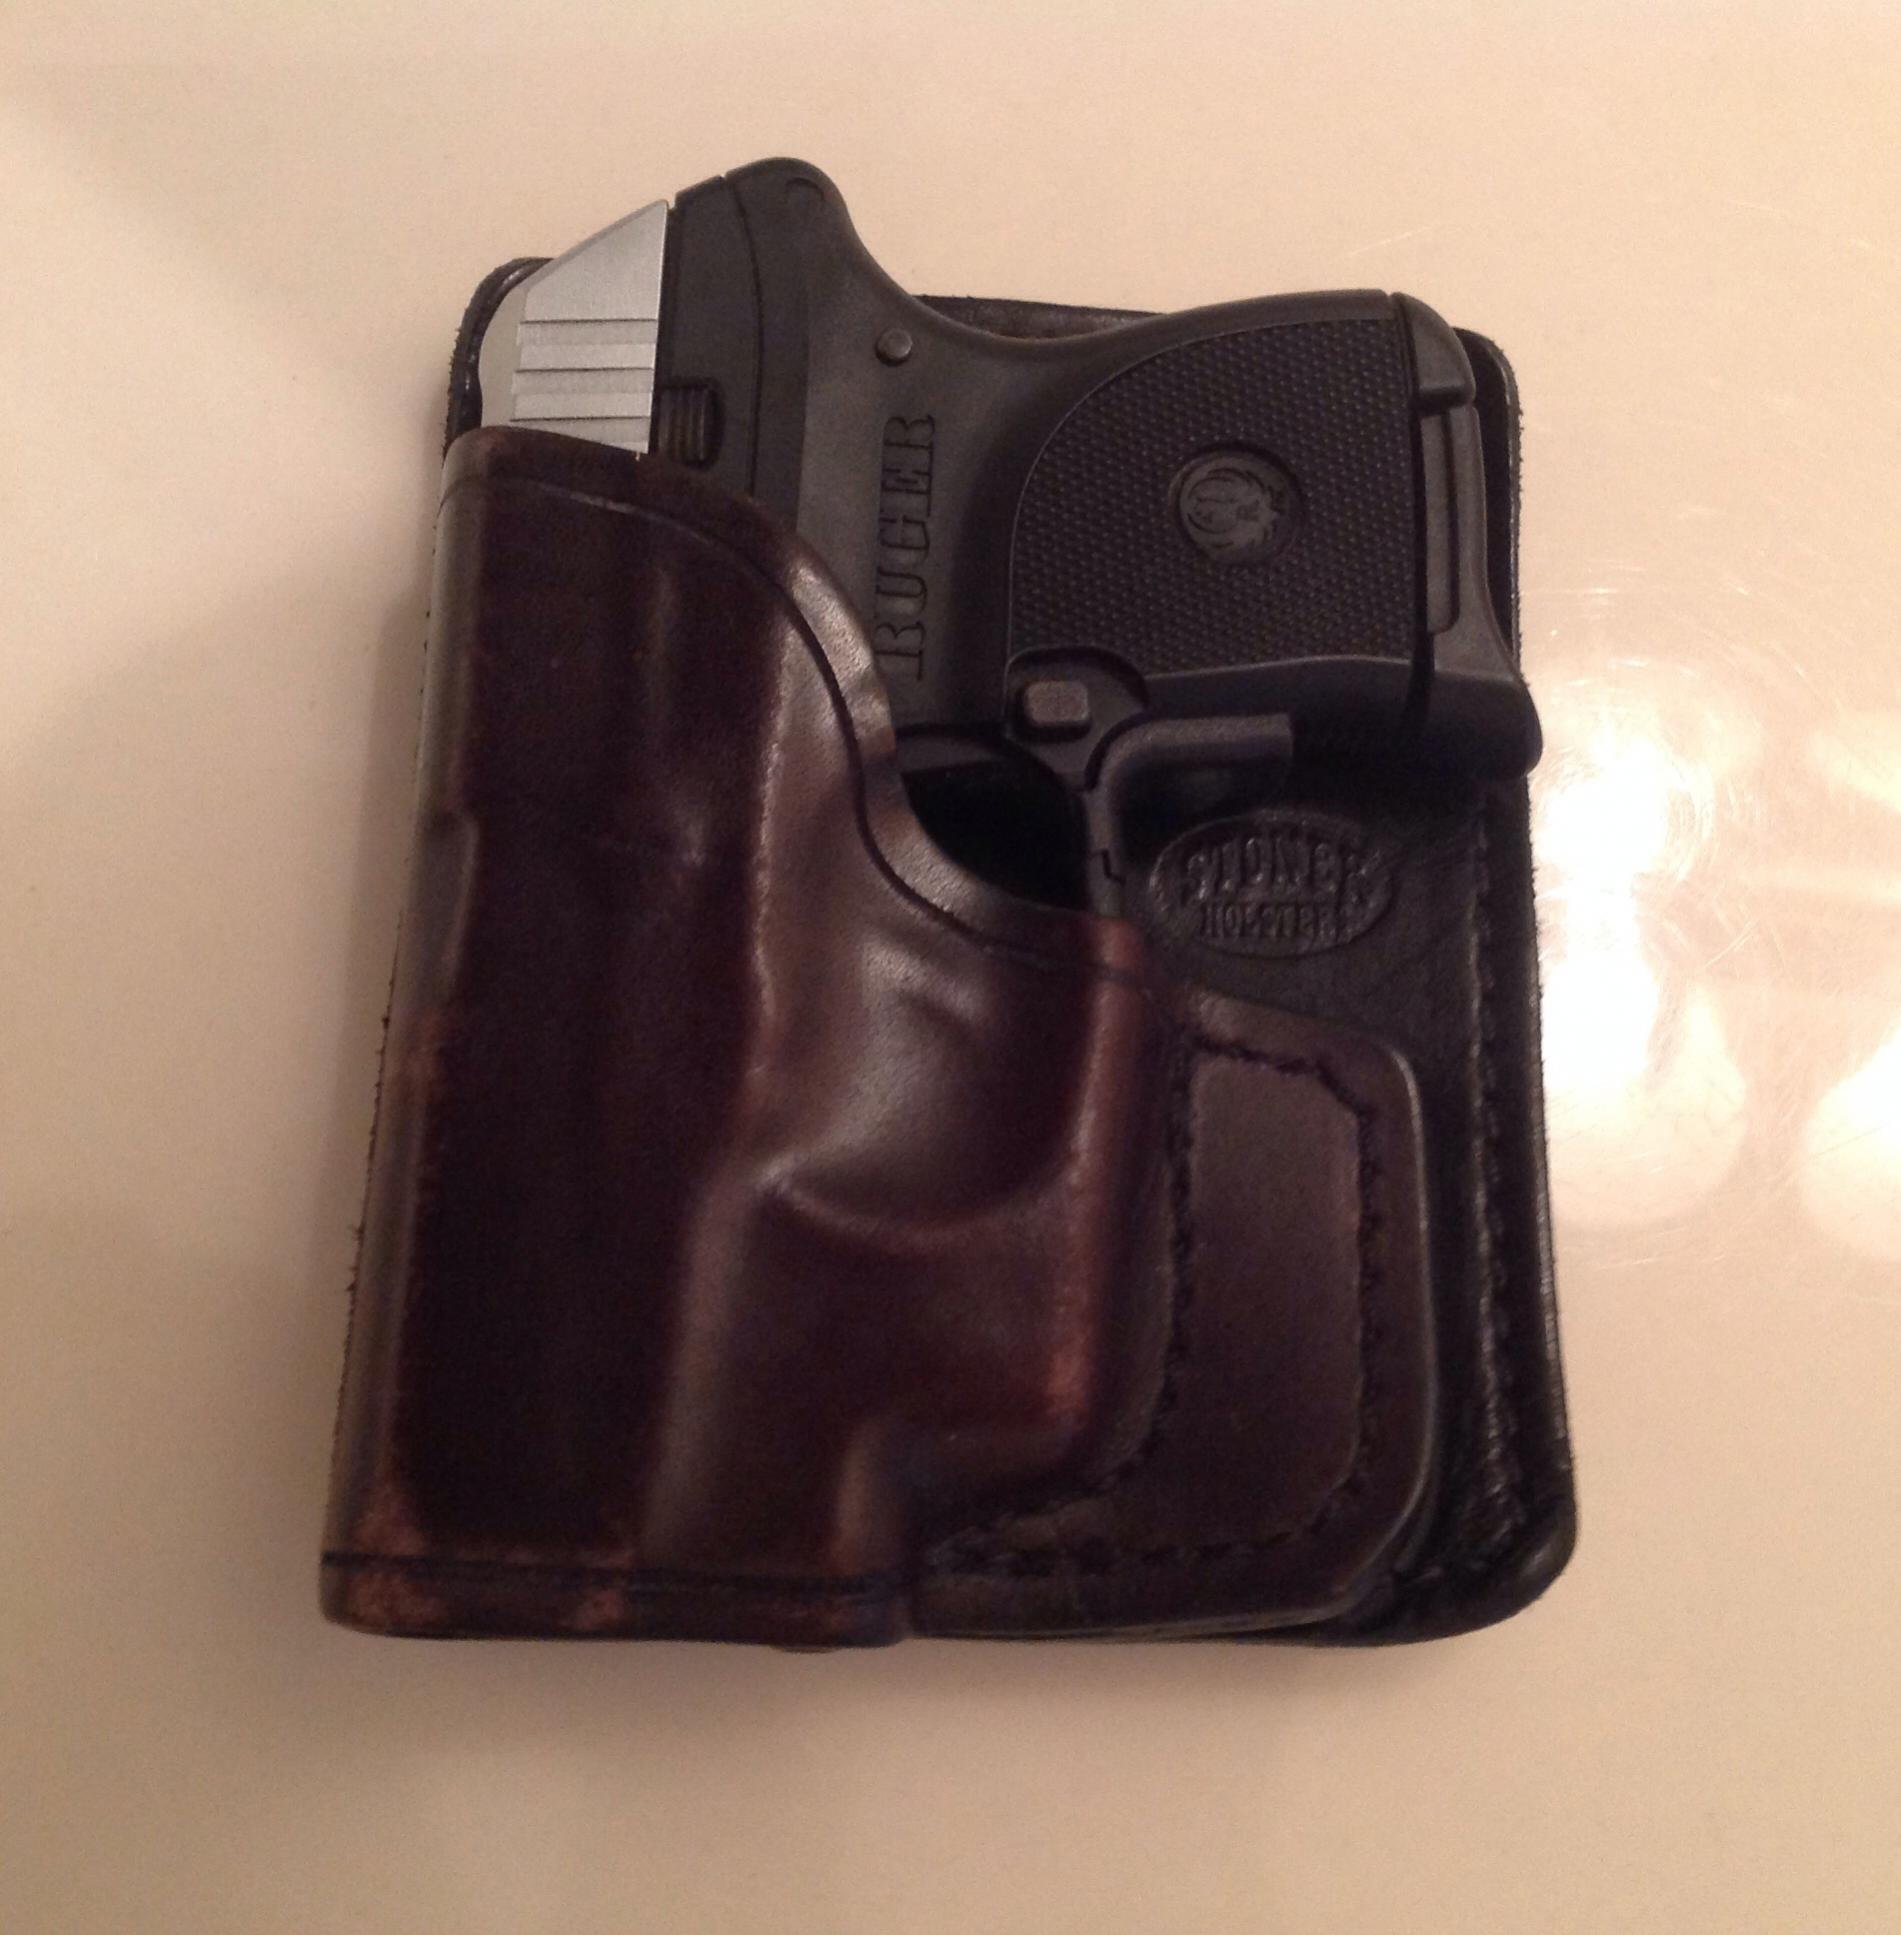 Pocket holster printing too much - Page 3